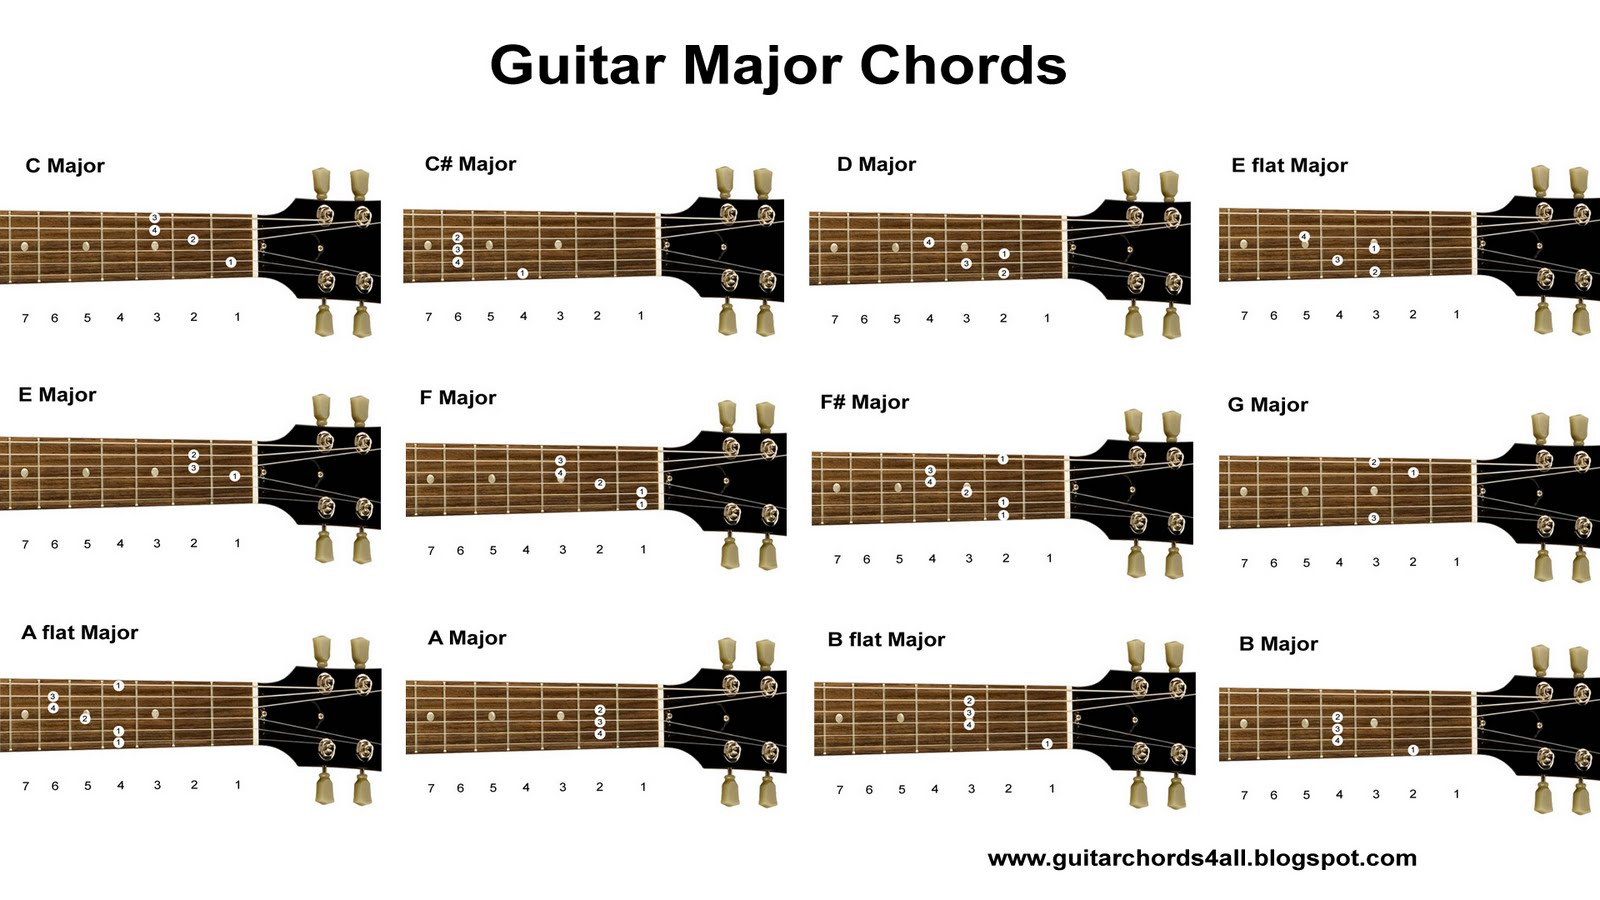 Guitar Chords 31 Free Hd Wallpaper - ListToday